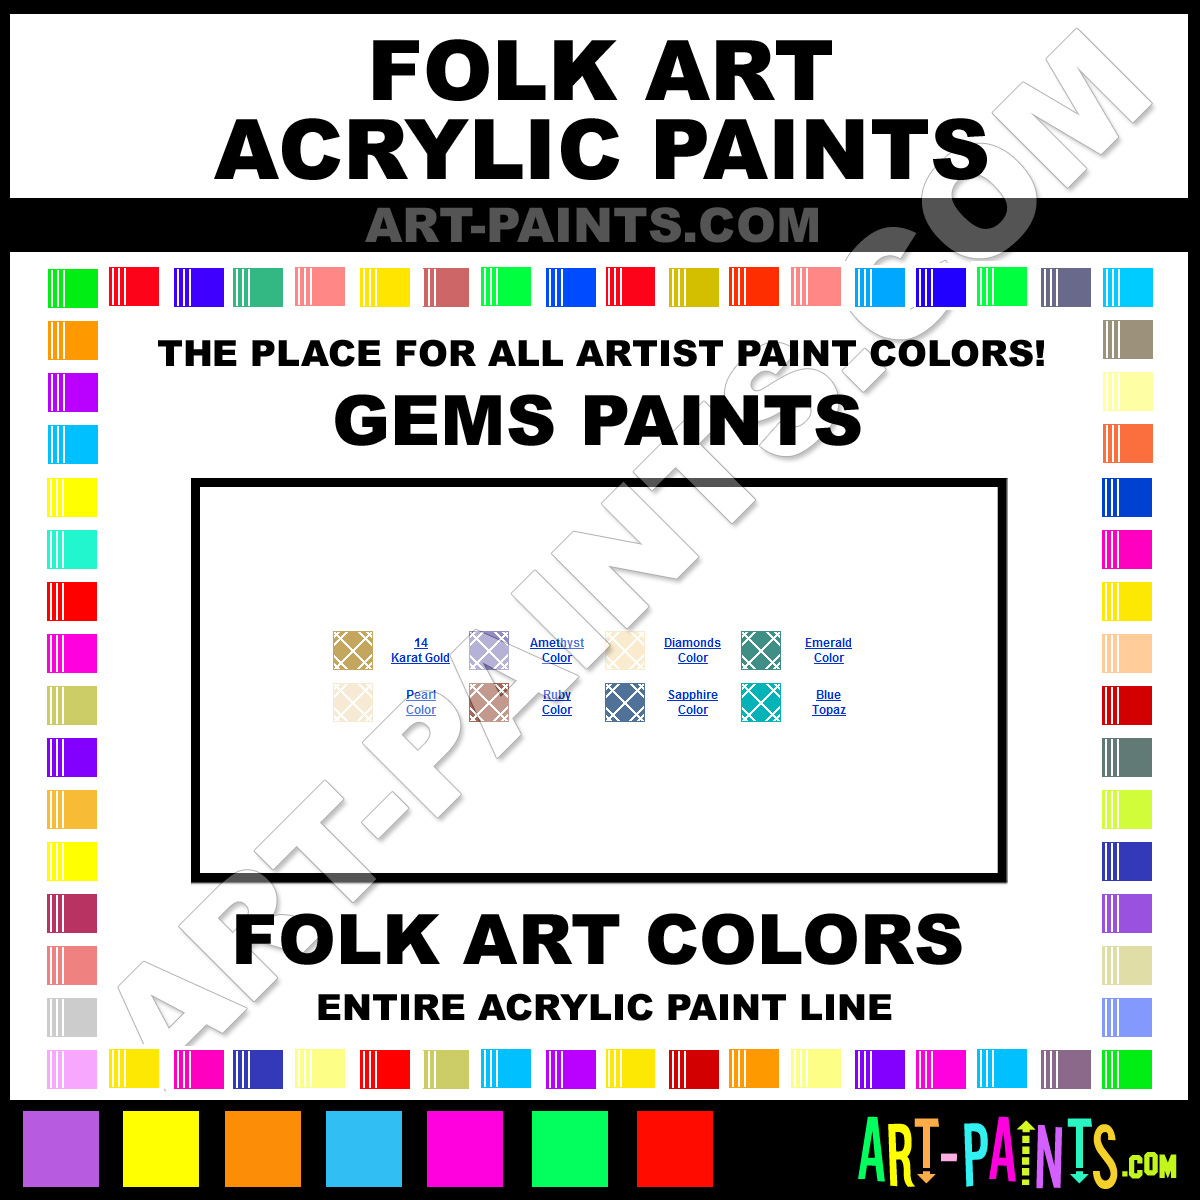 Folk art acrylic paint color chart - Amethyst Paint 654 By Folk Art